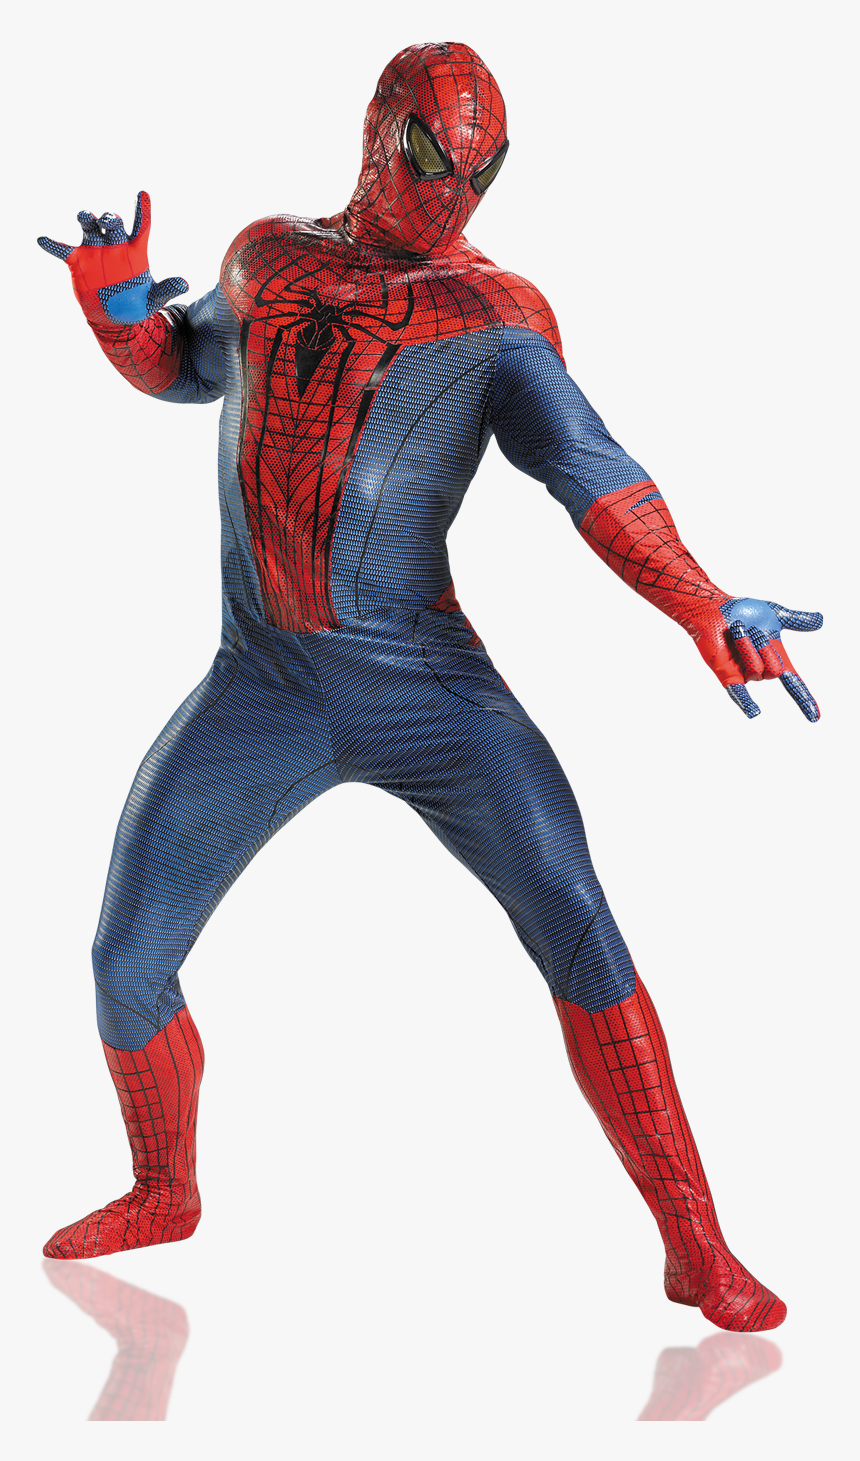 Entertainment The Amazing Spider Man 2012 Marvel Entertainment Spider Man Real Costume Hd Png Download Transparent Png Image Pngitem